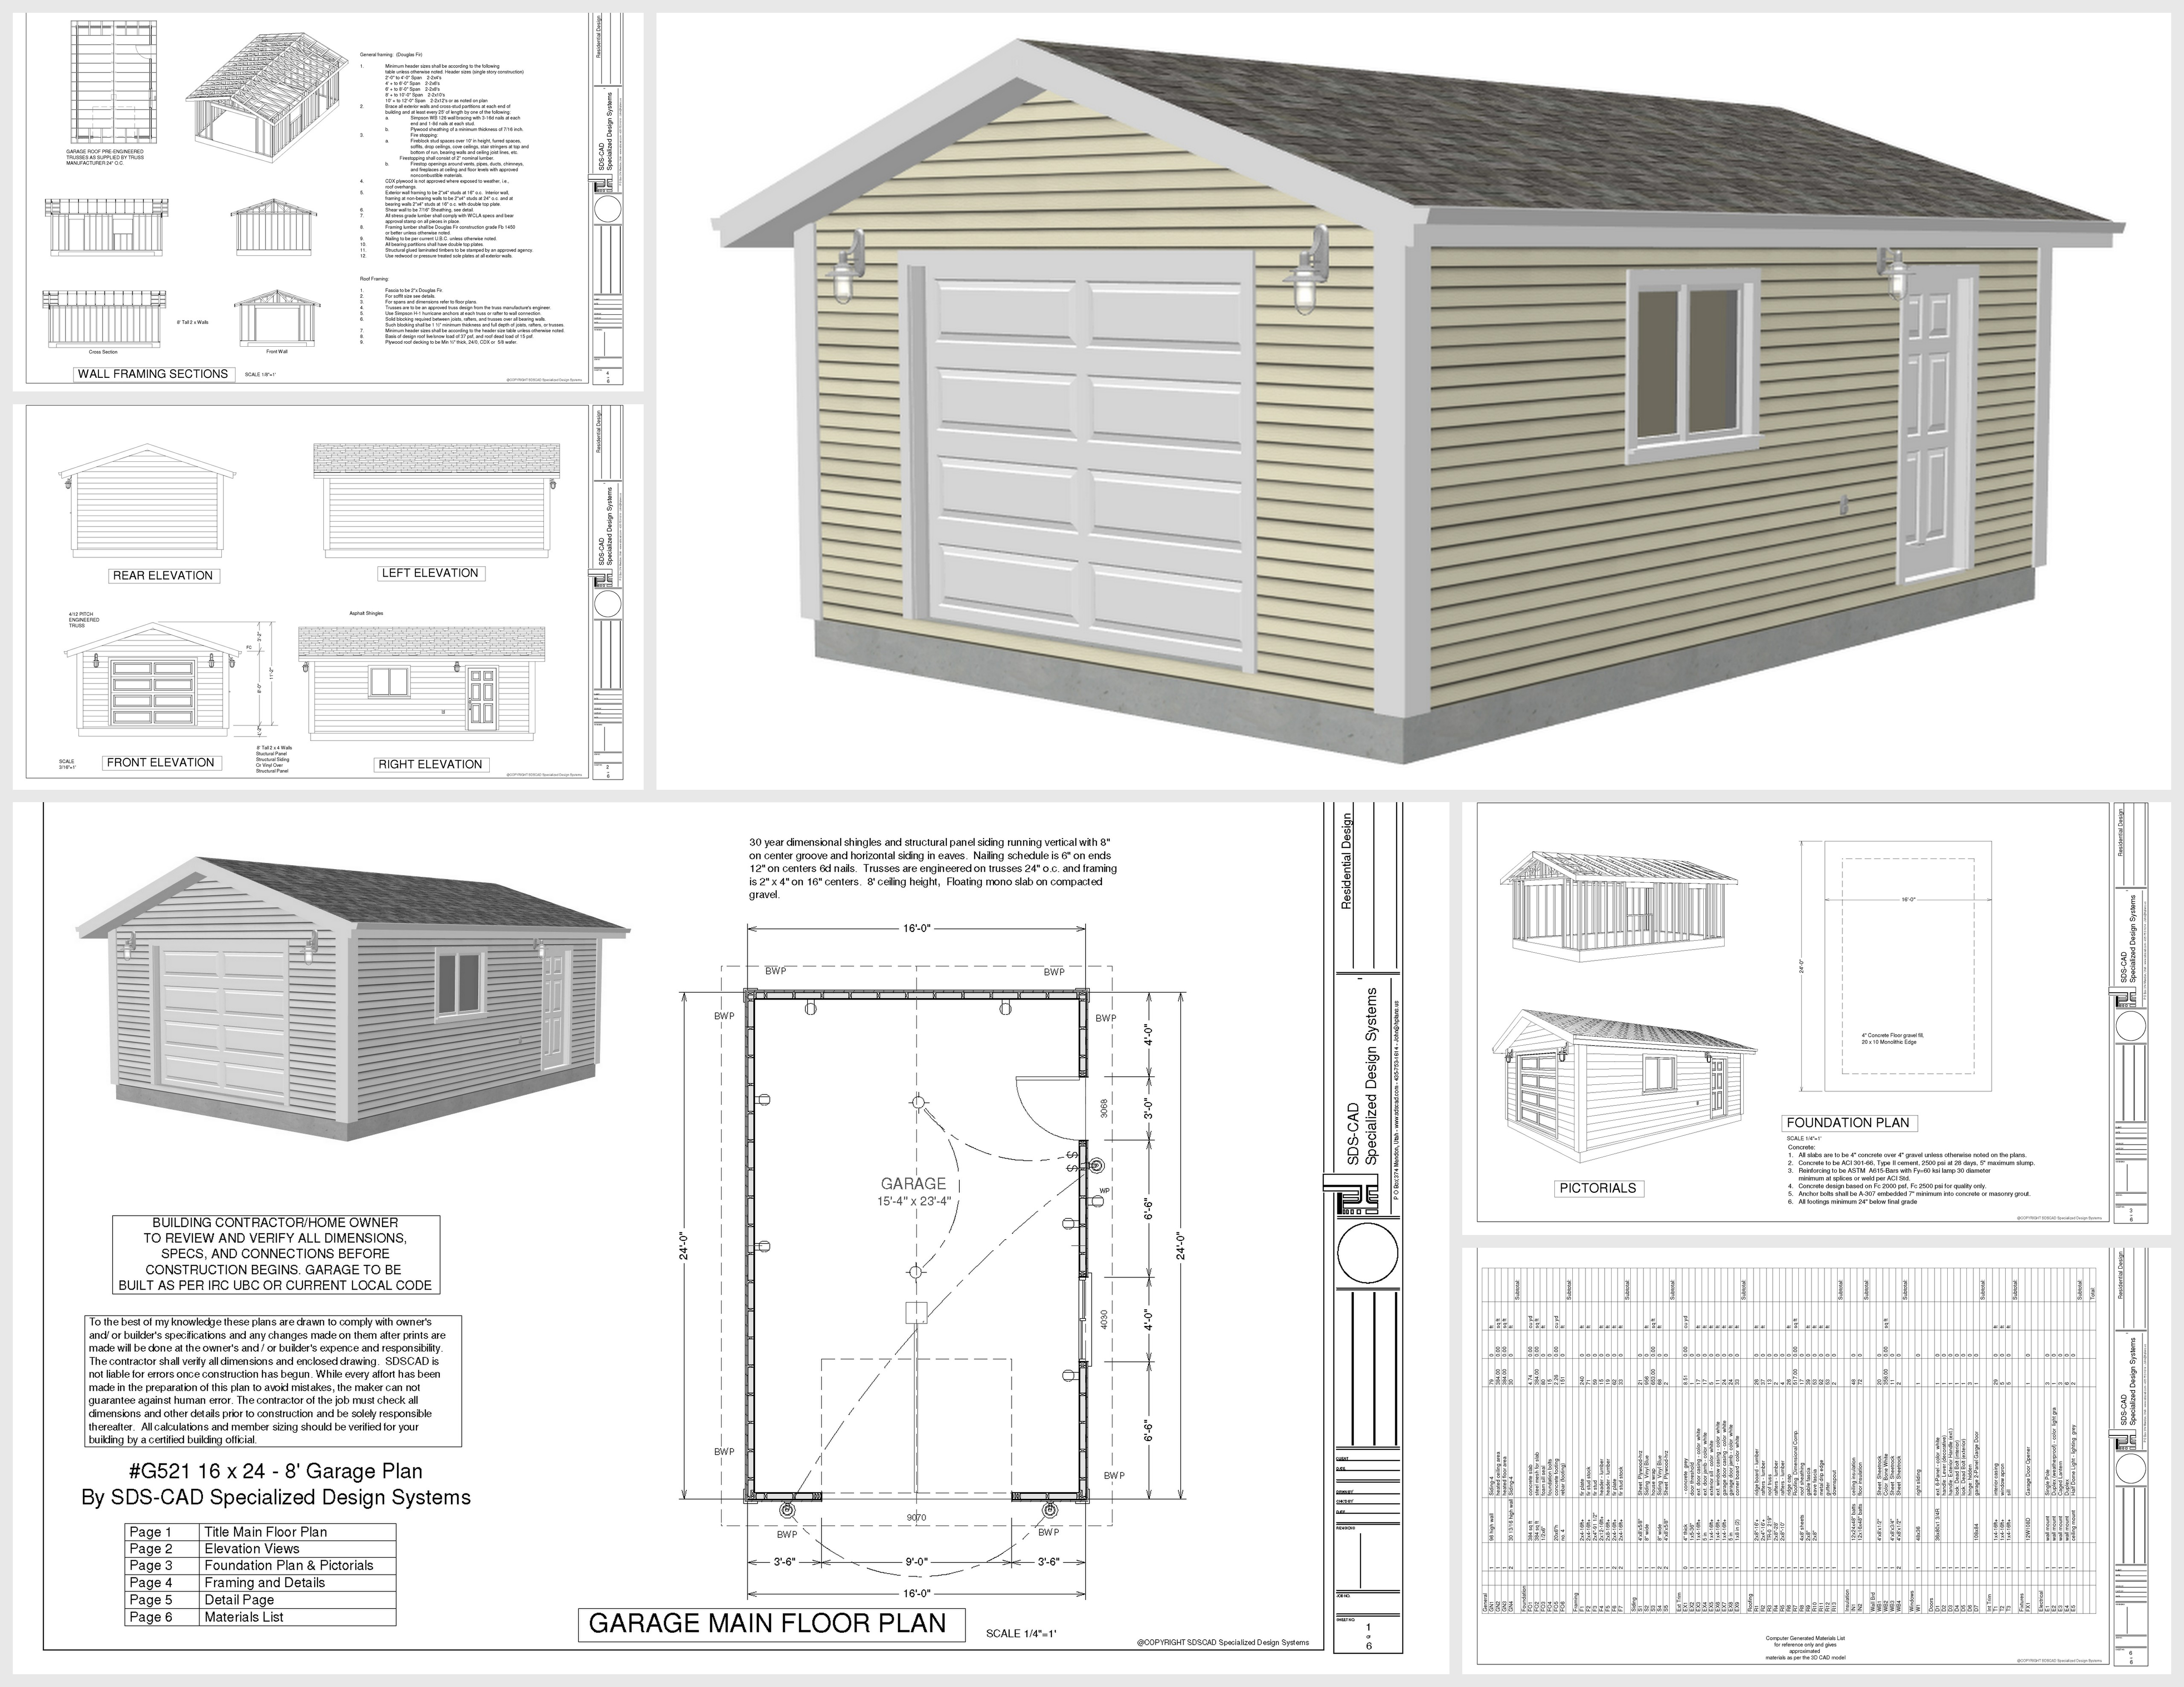 Free garage plans g521 16 x 24 x 8 garage plans pdf and dwg Garage layout planner